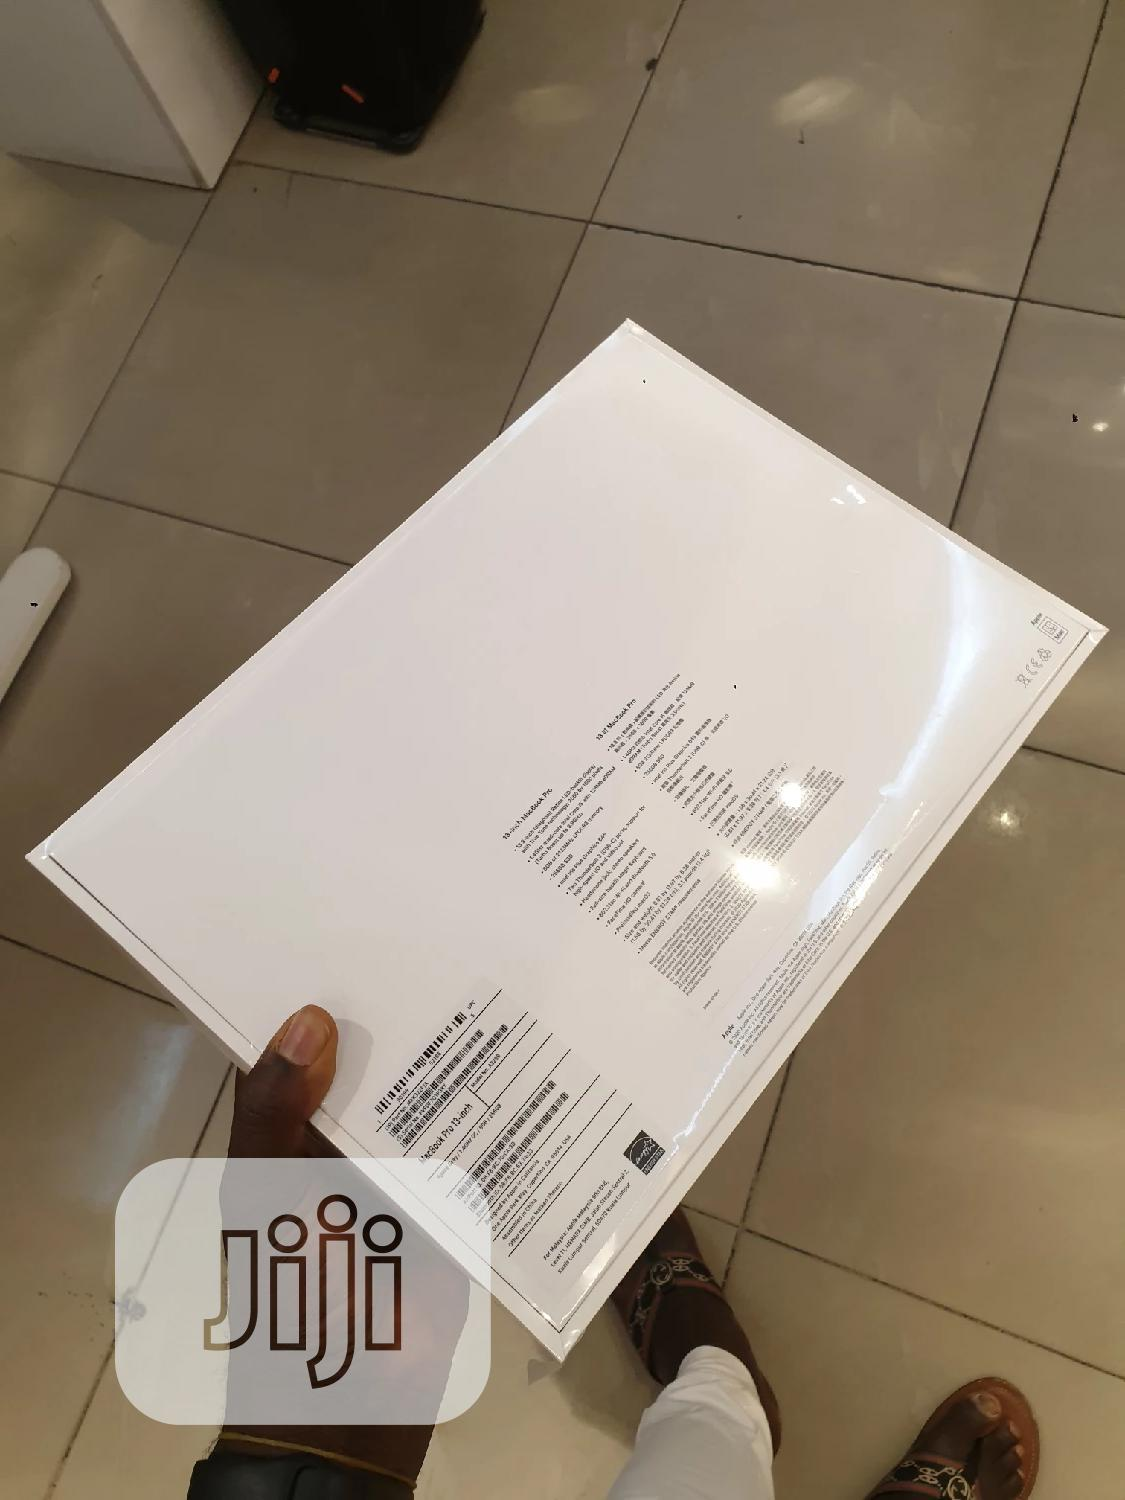 New Laptop Apple MacBook Pro 2020 8GB Intel Core I5 SSD 250GB   Laptops & Computers for sale in Wuse 2, Abuja (FCT) State, Nigeria